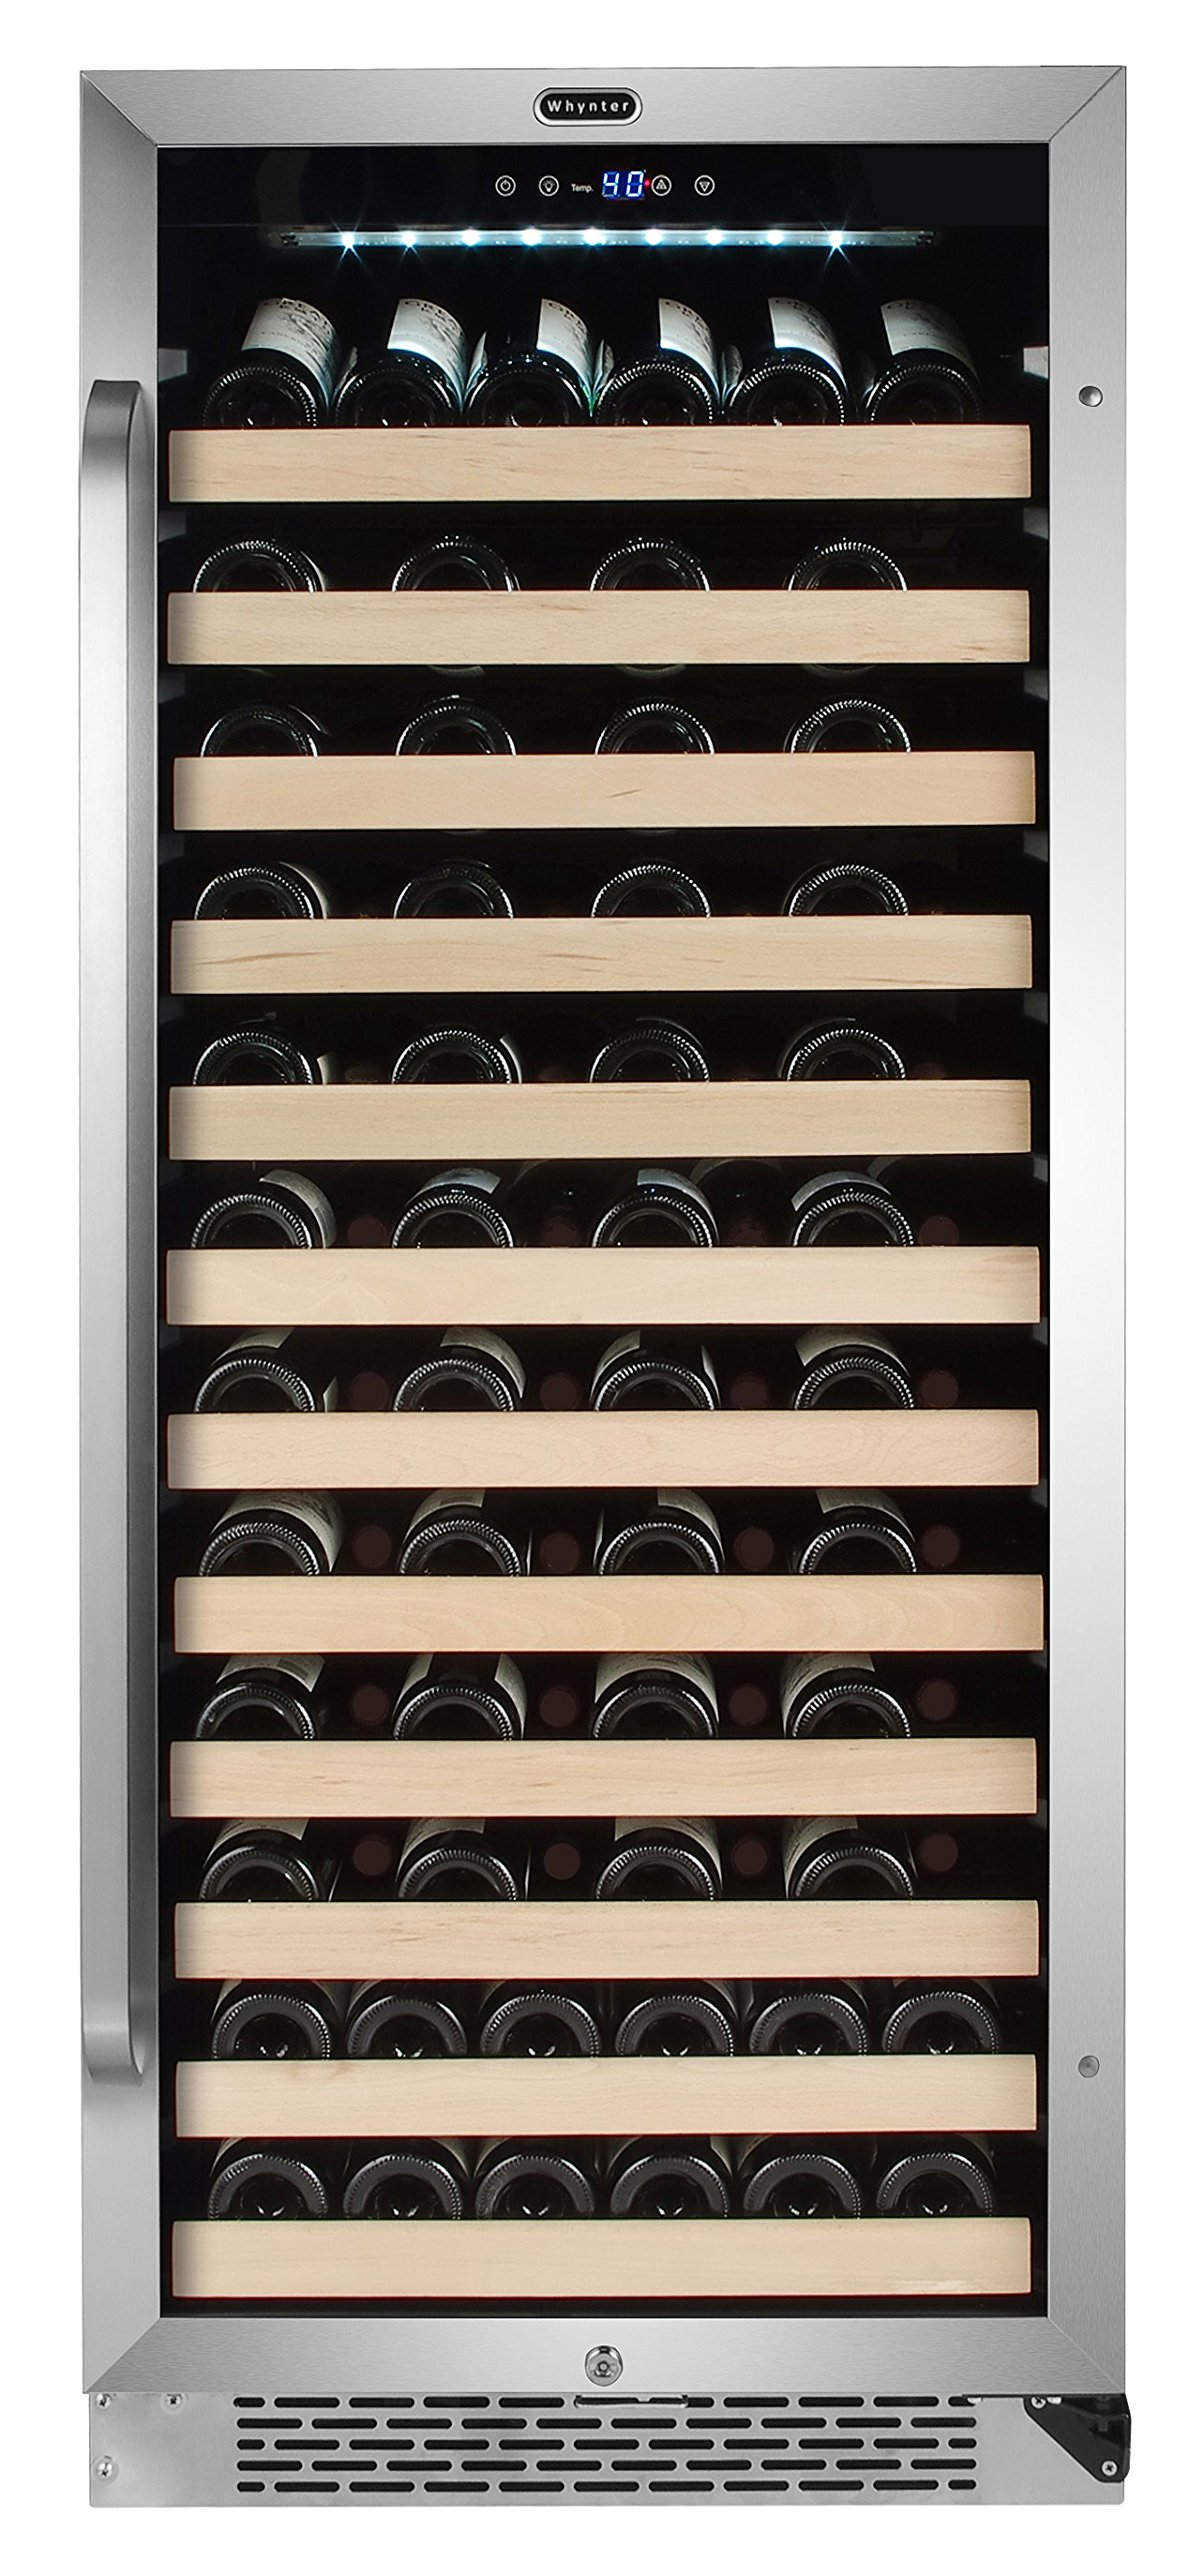 Whynter Stainless Steel BWR-1002SD 100 Bottle Built-in Compressor Wine Refrigerator Rack and LED display, One Size by Whynter